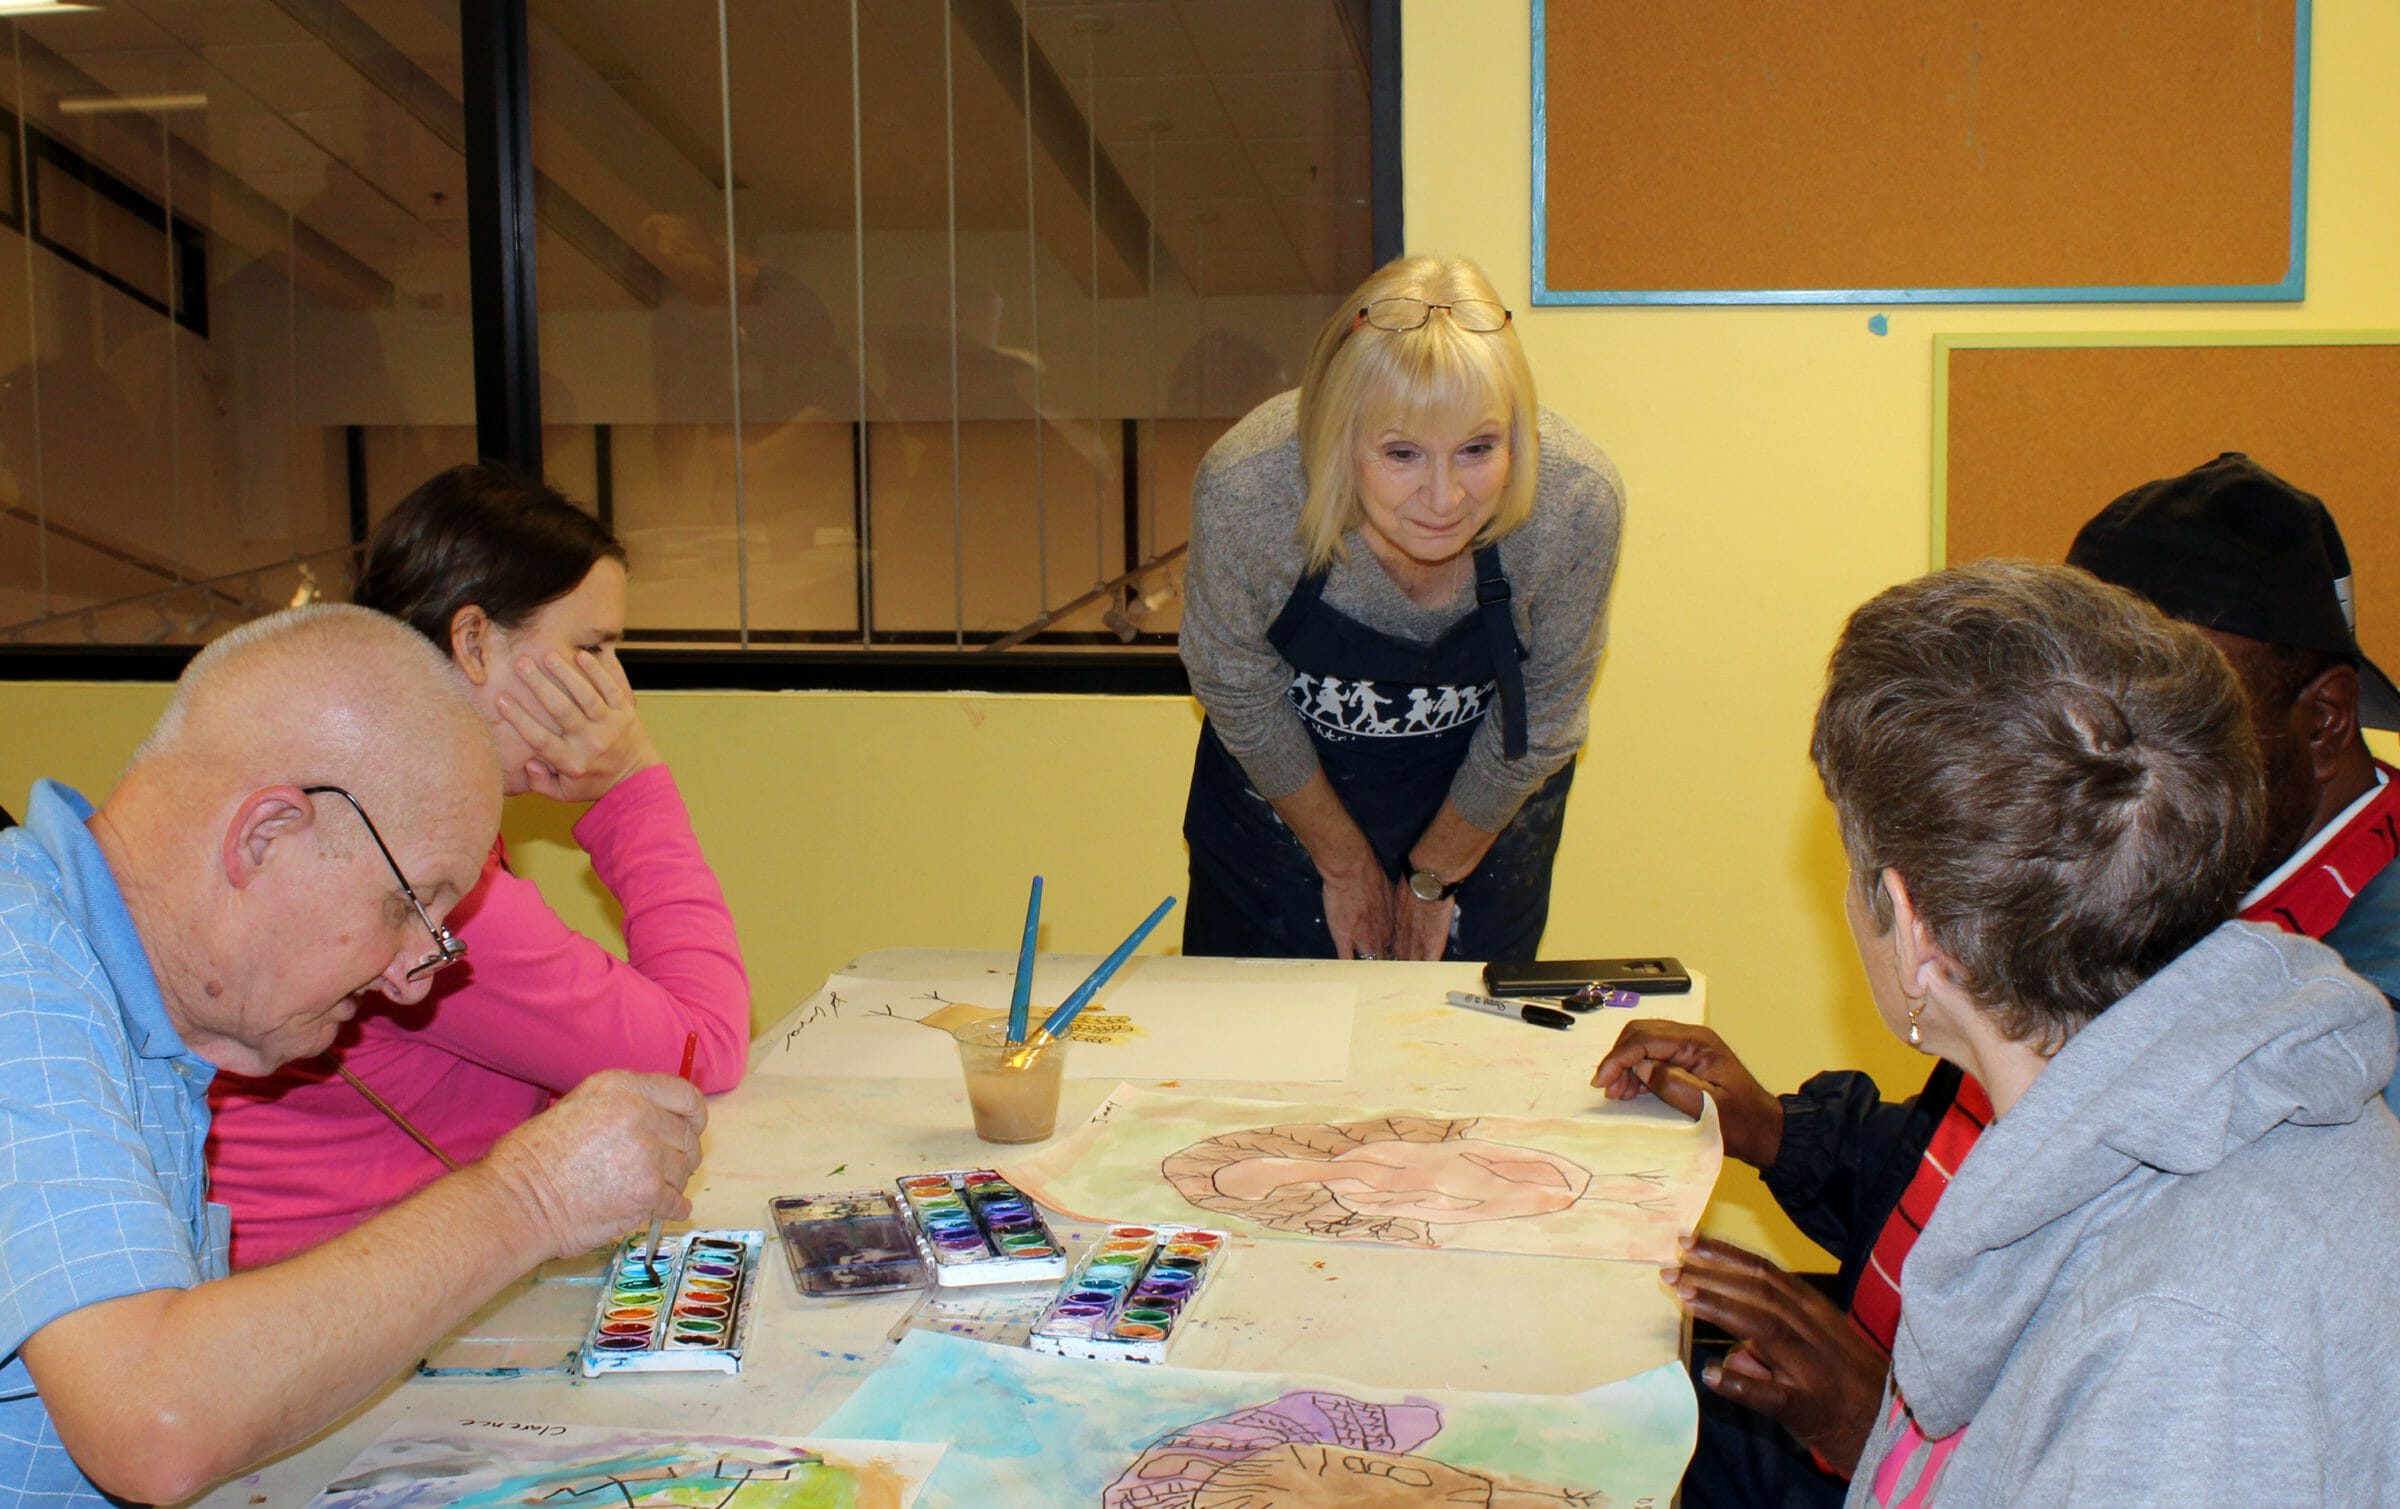 Adult Developmental Disability group travels to participate in art-learning opportunity at the Turner Center for the Arts